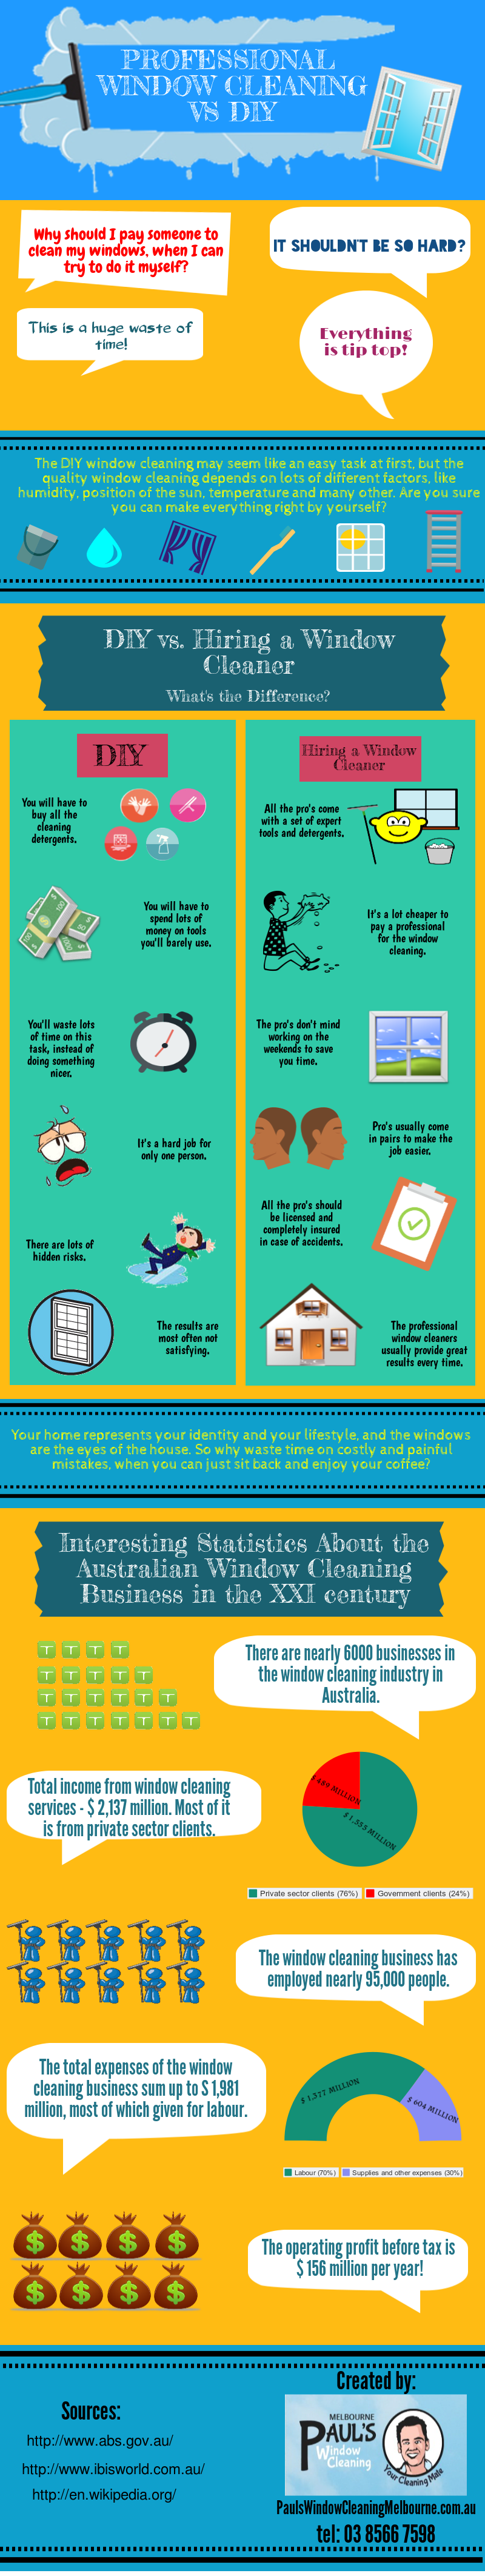 Professional window cleaning vs diy infographic infographix directory - Diy tips home window cleaning ...